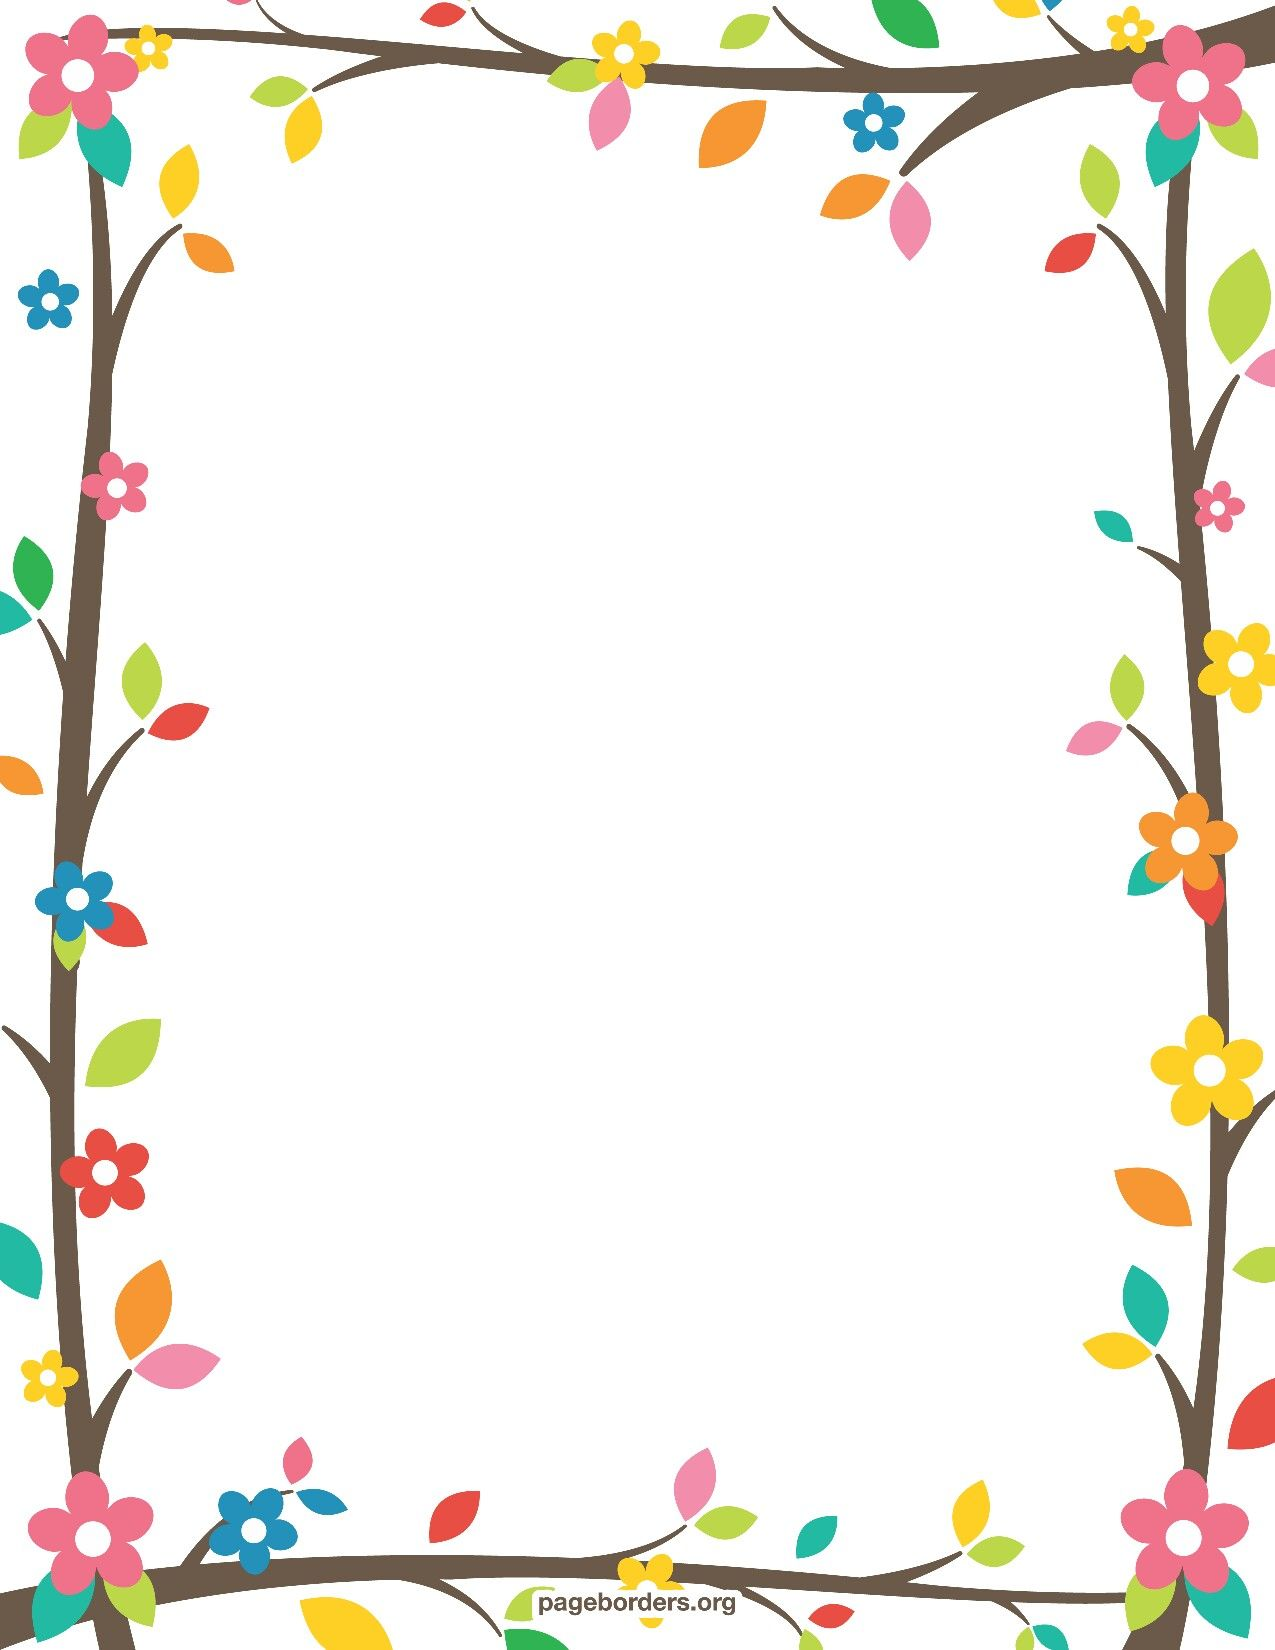 Paper Border Design  Paper Border Designs Templates